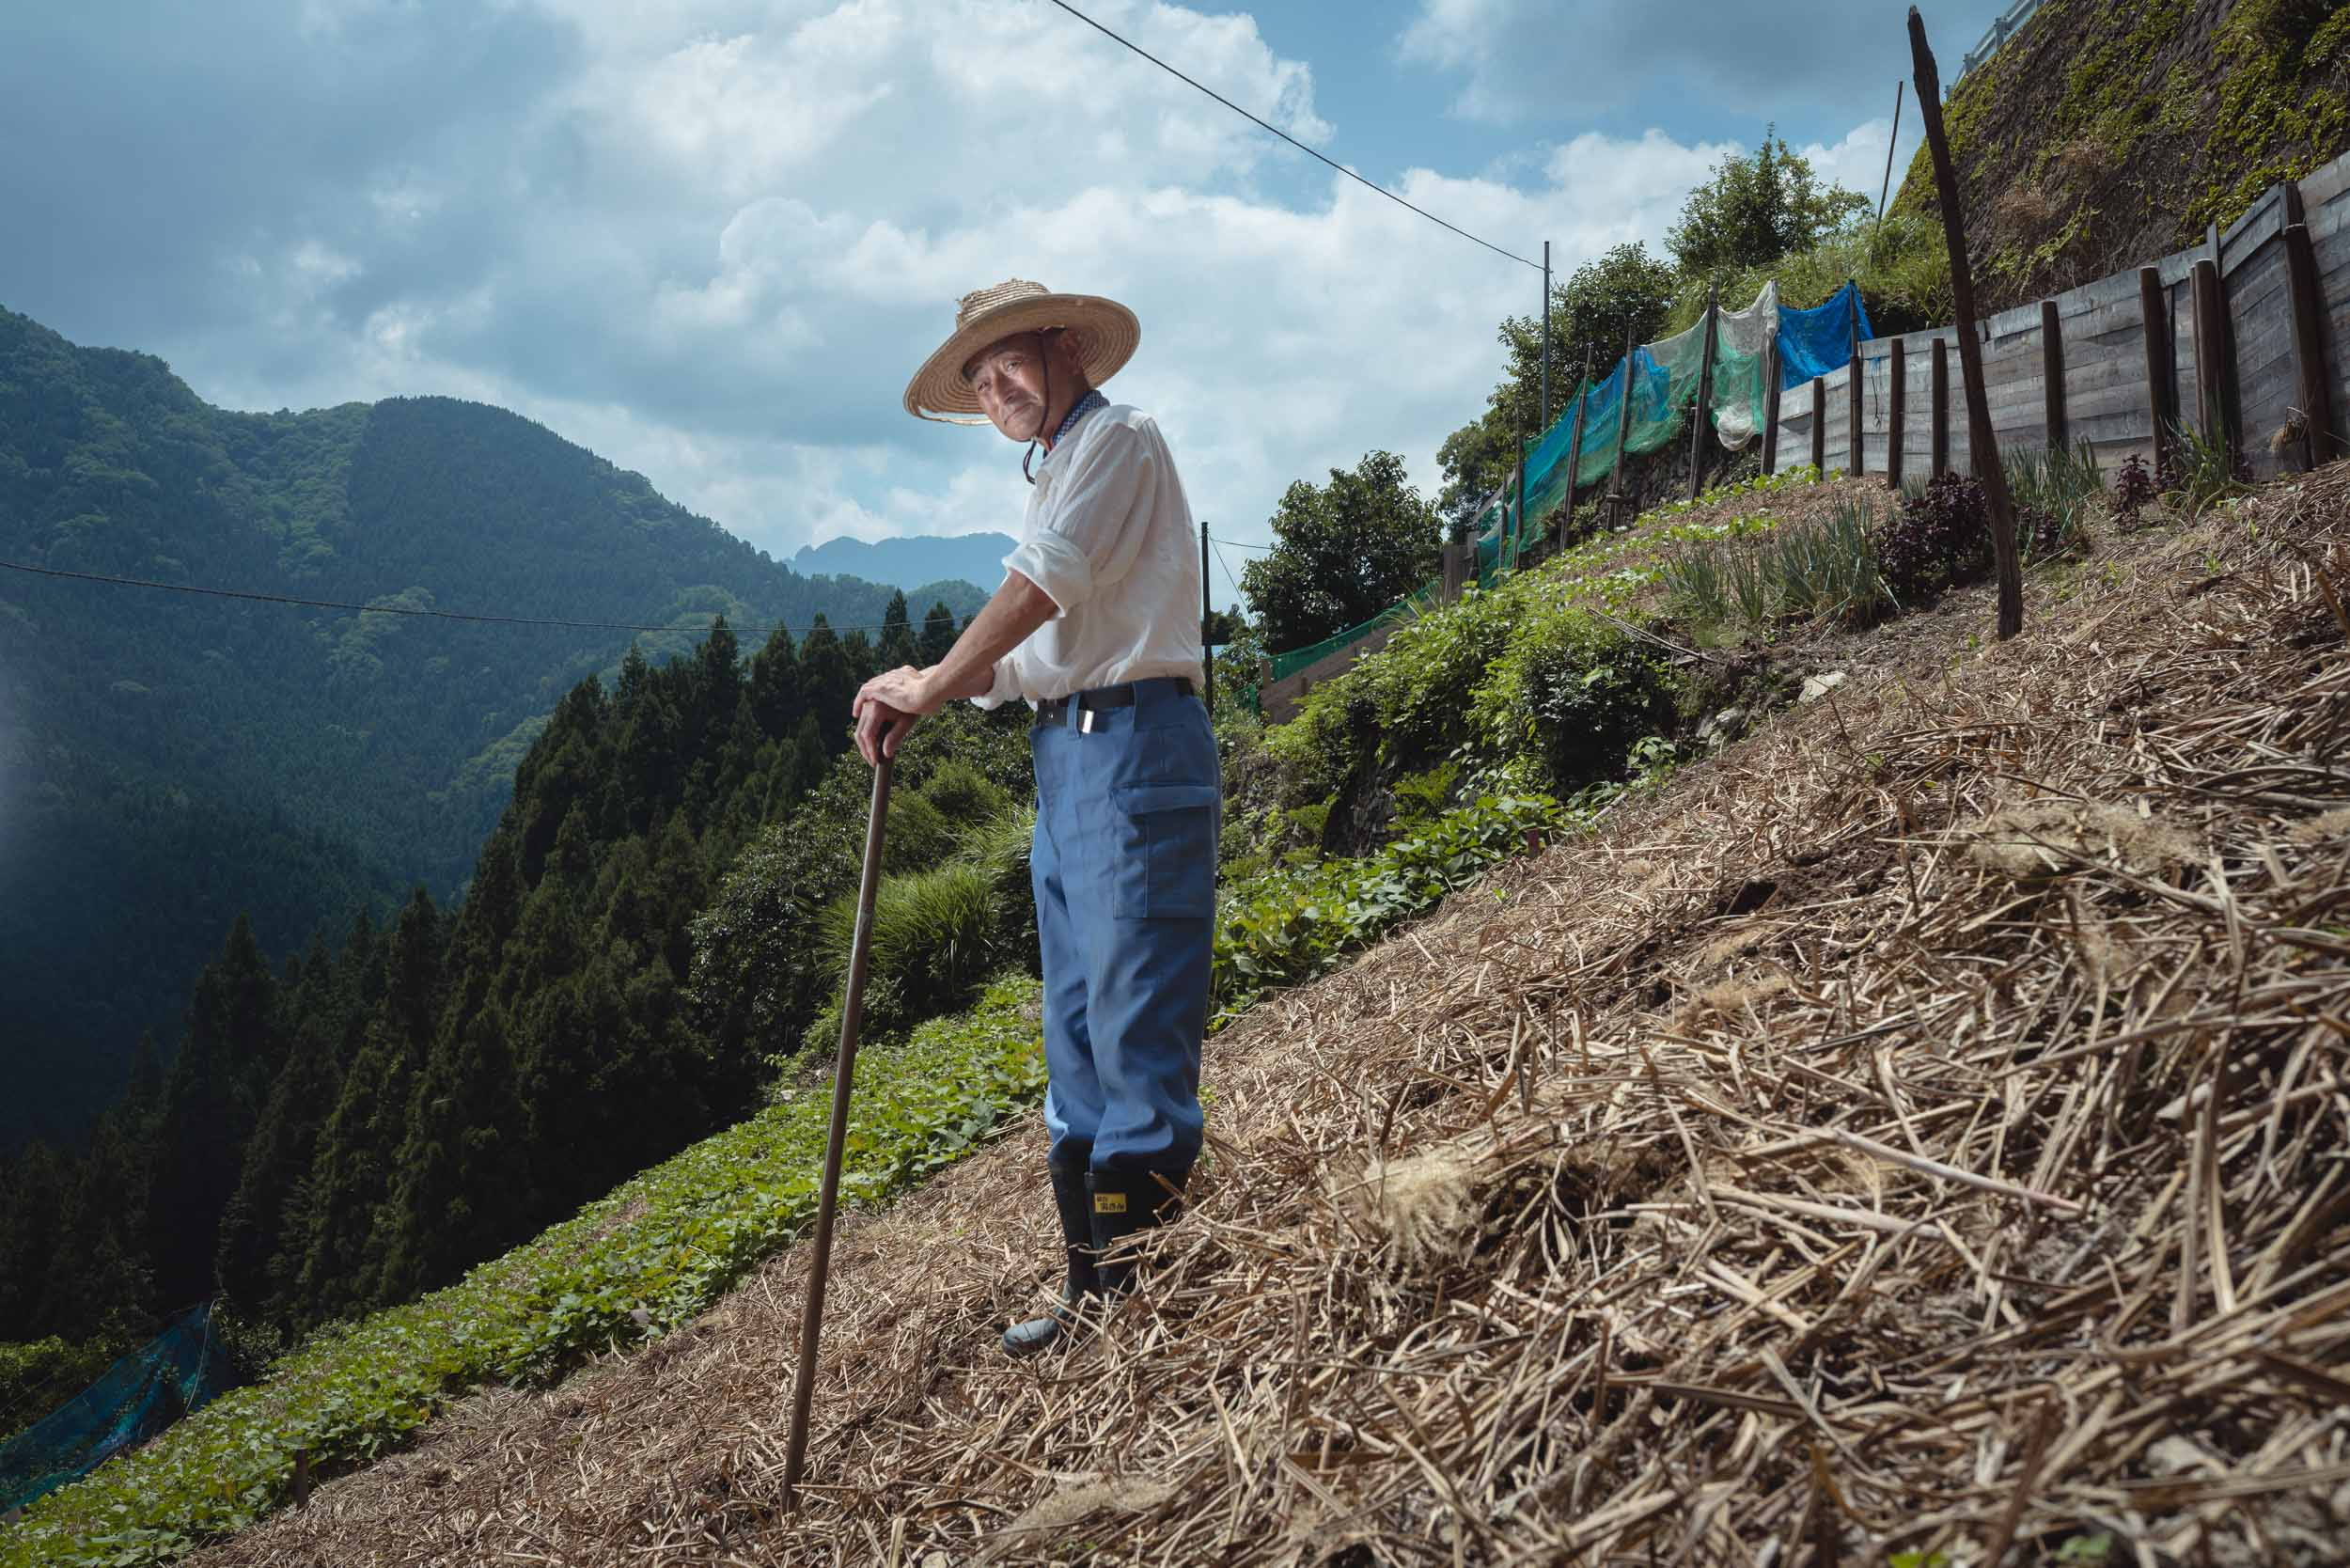 Tokyo Photographer Irwin Wong  - Extreme Incline Farmer from Shikoku